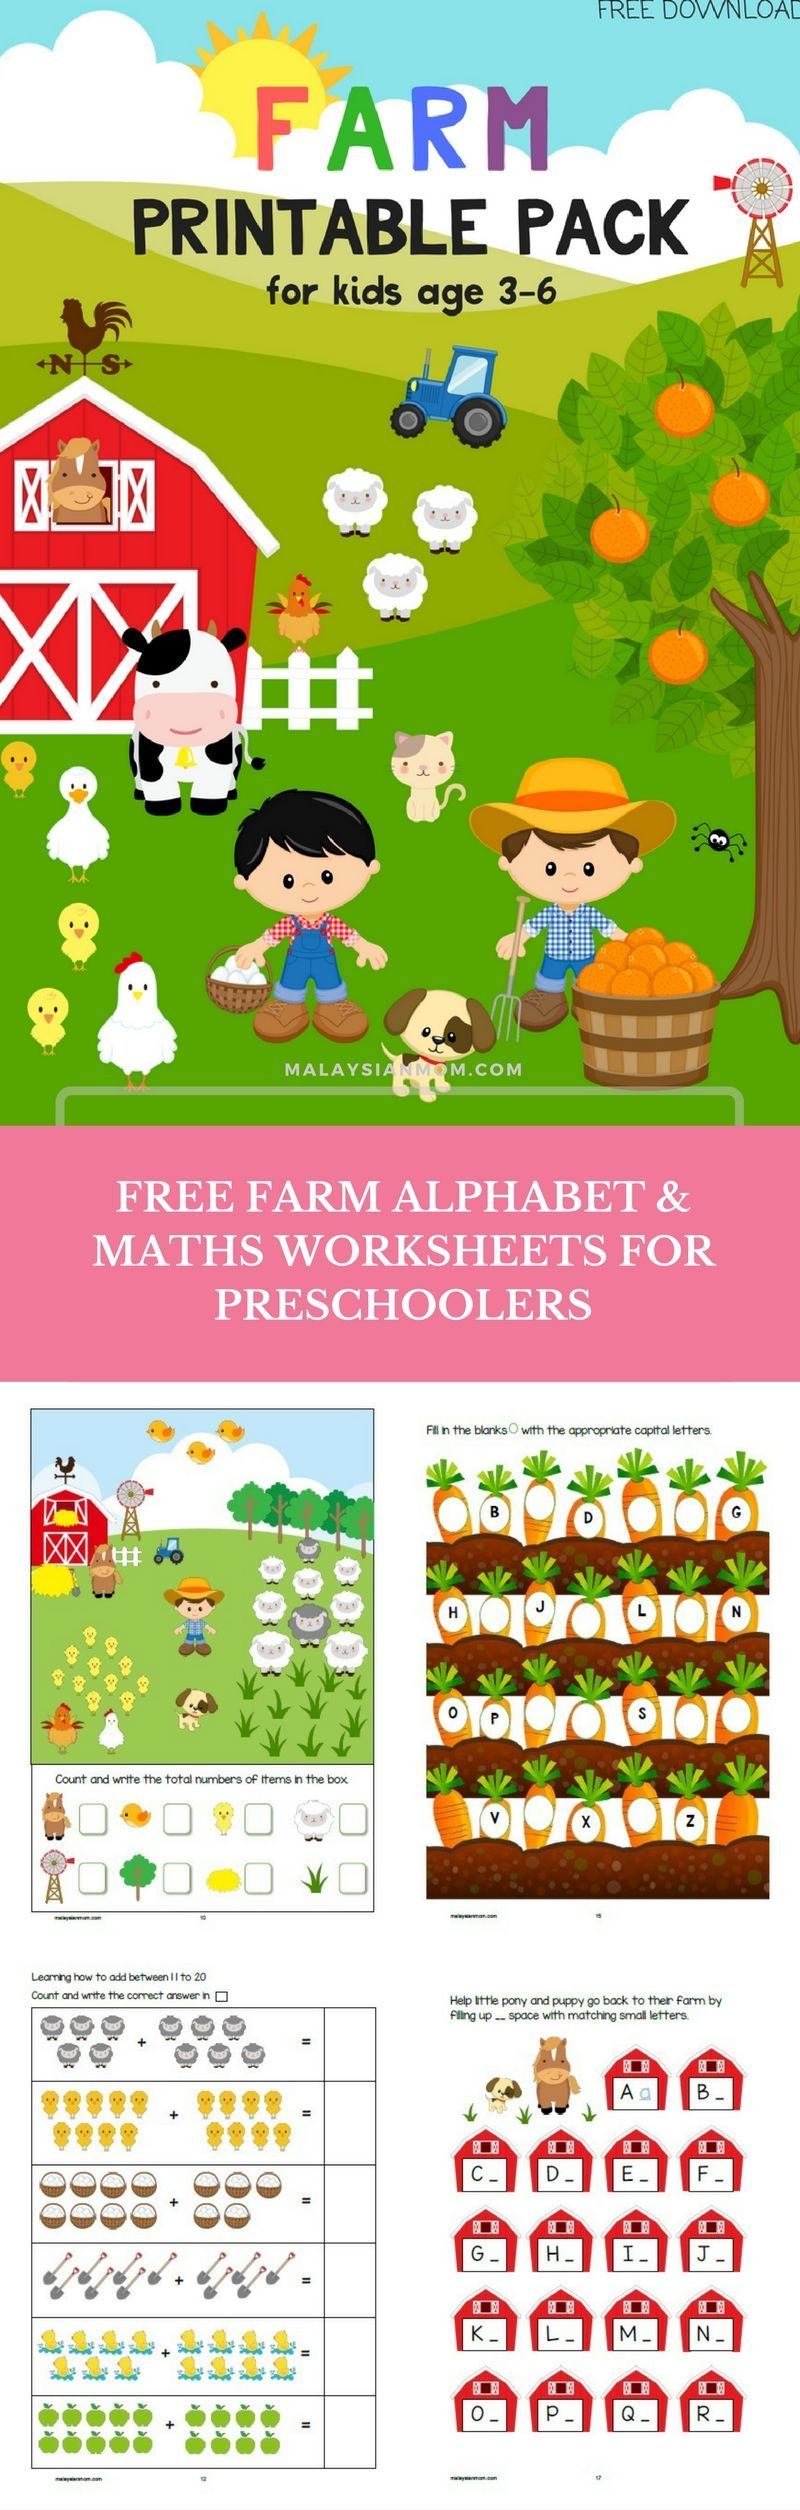 FARM PRINTABLE PACK | Literacy worksheets, Preschool themes and Literacy